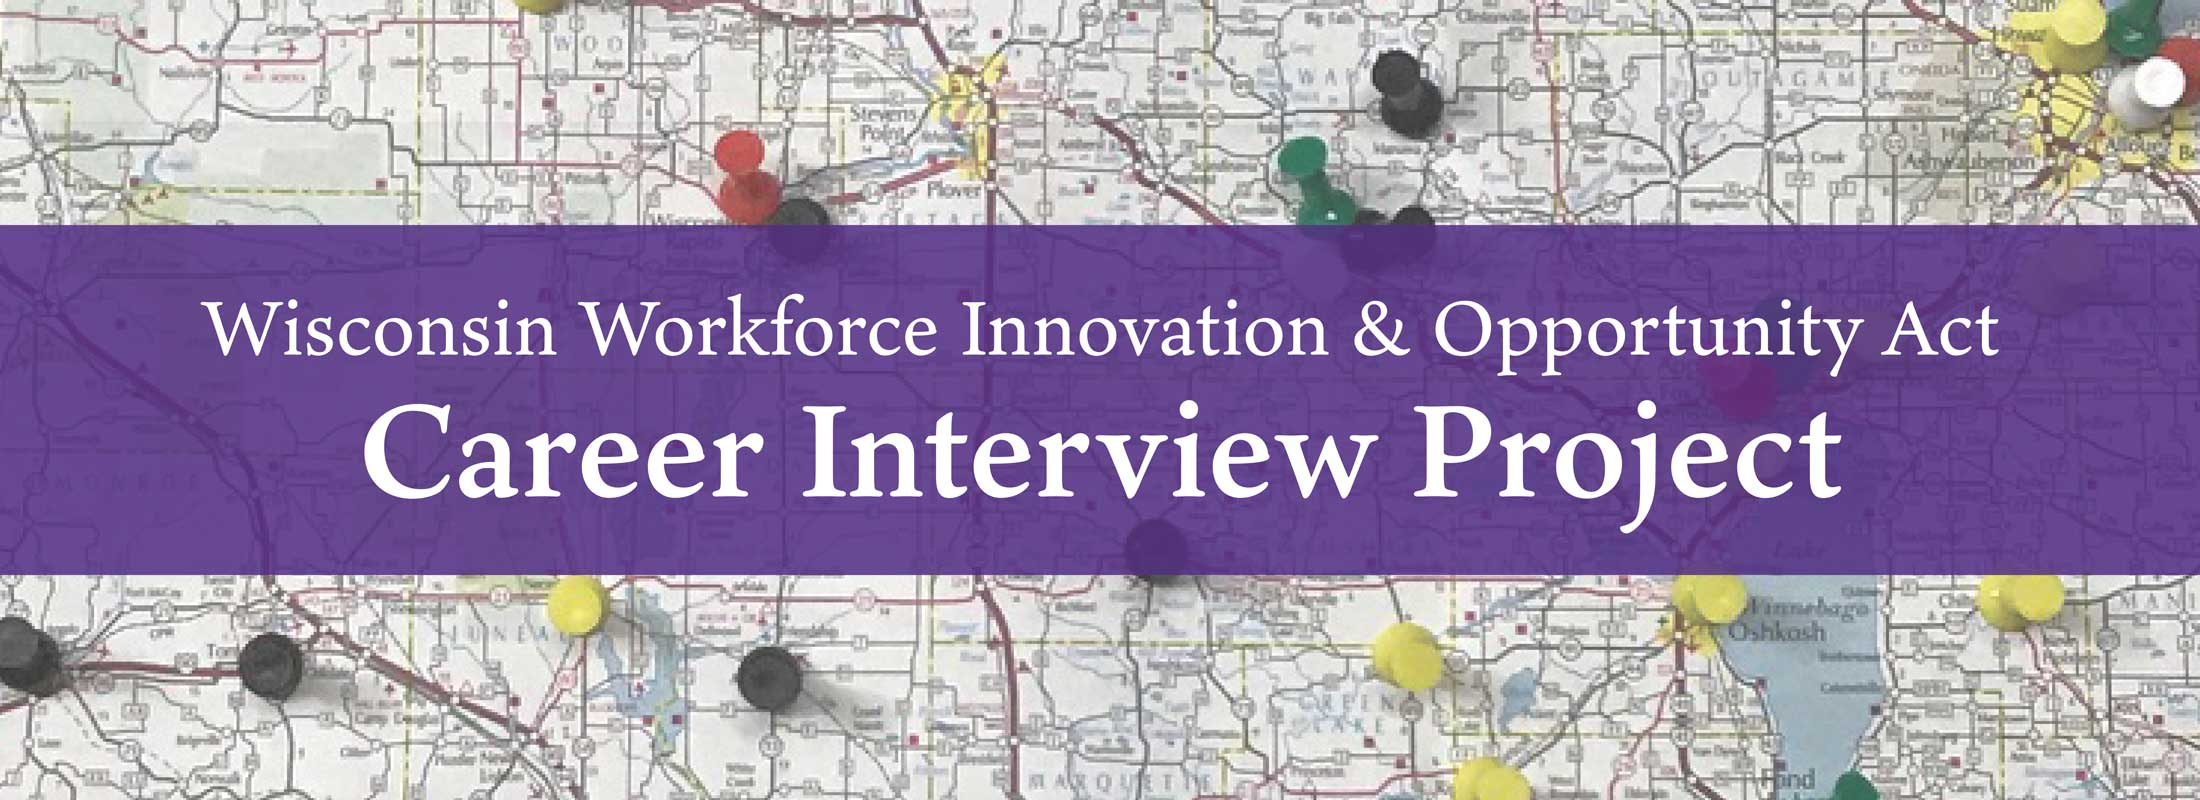 WIOA Career Interview Project Banner